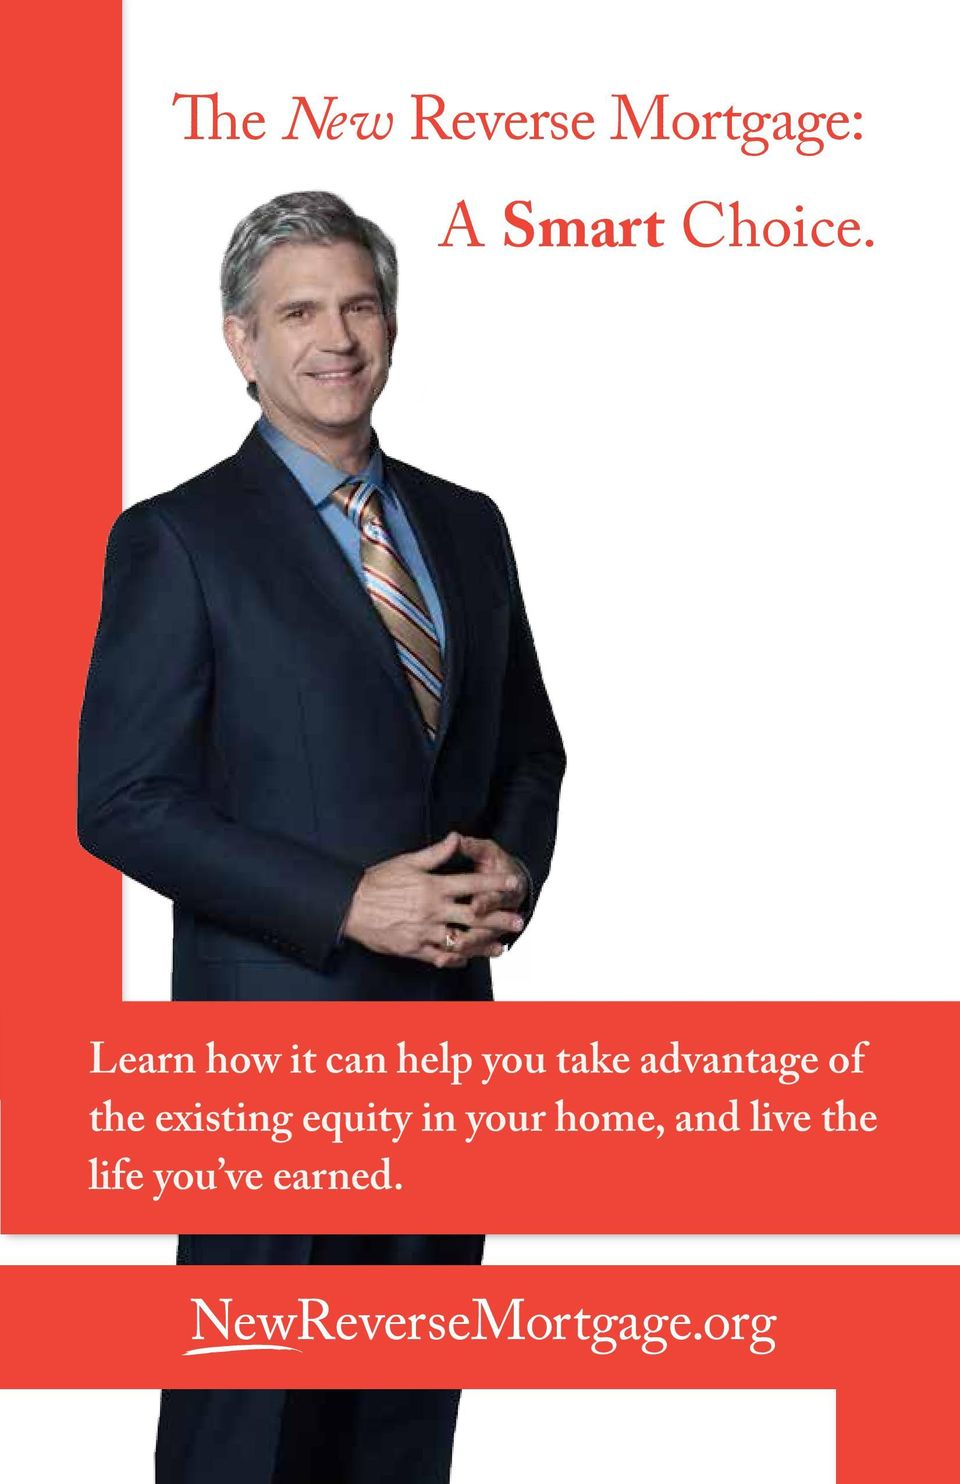 the existing equity in your